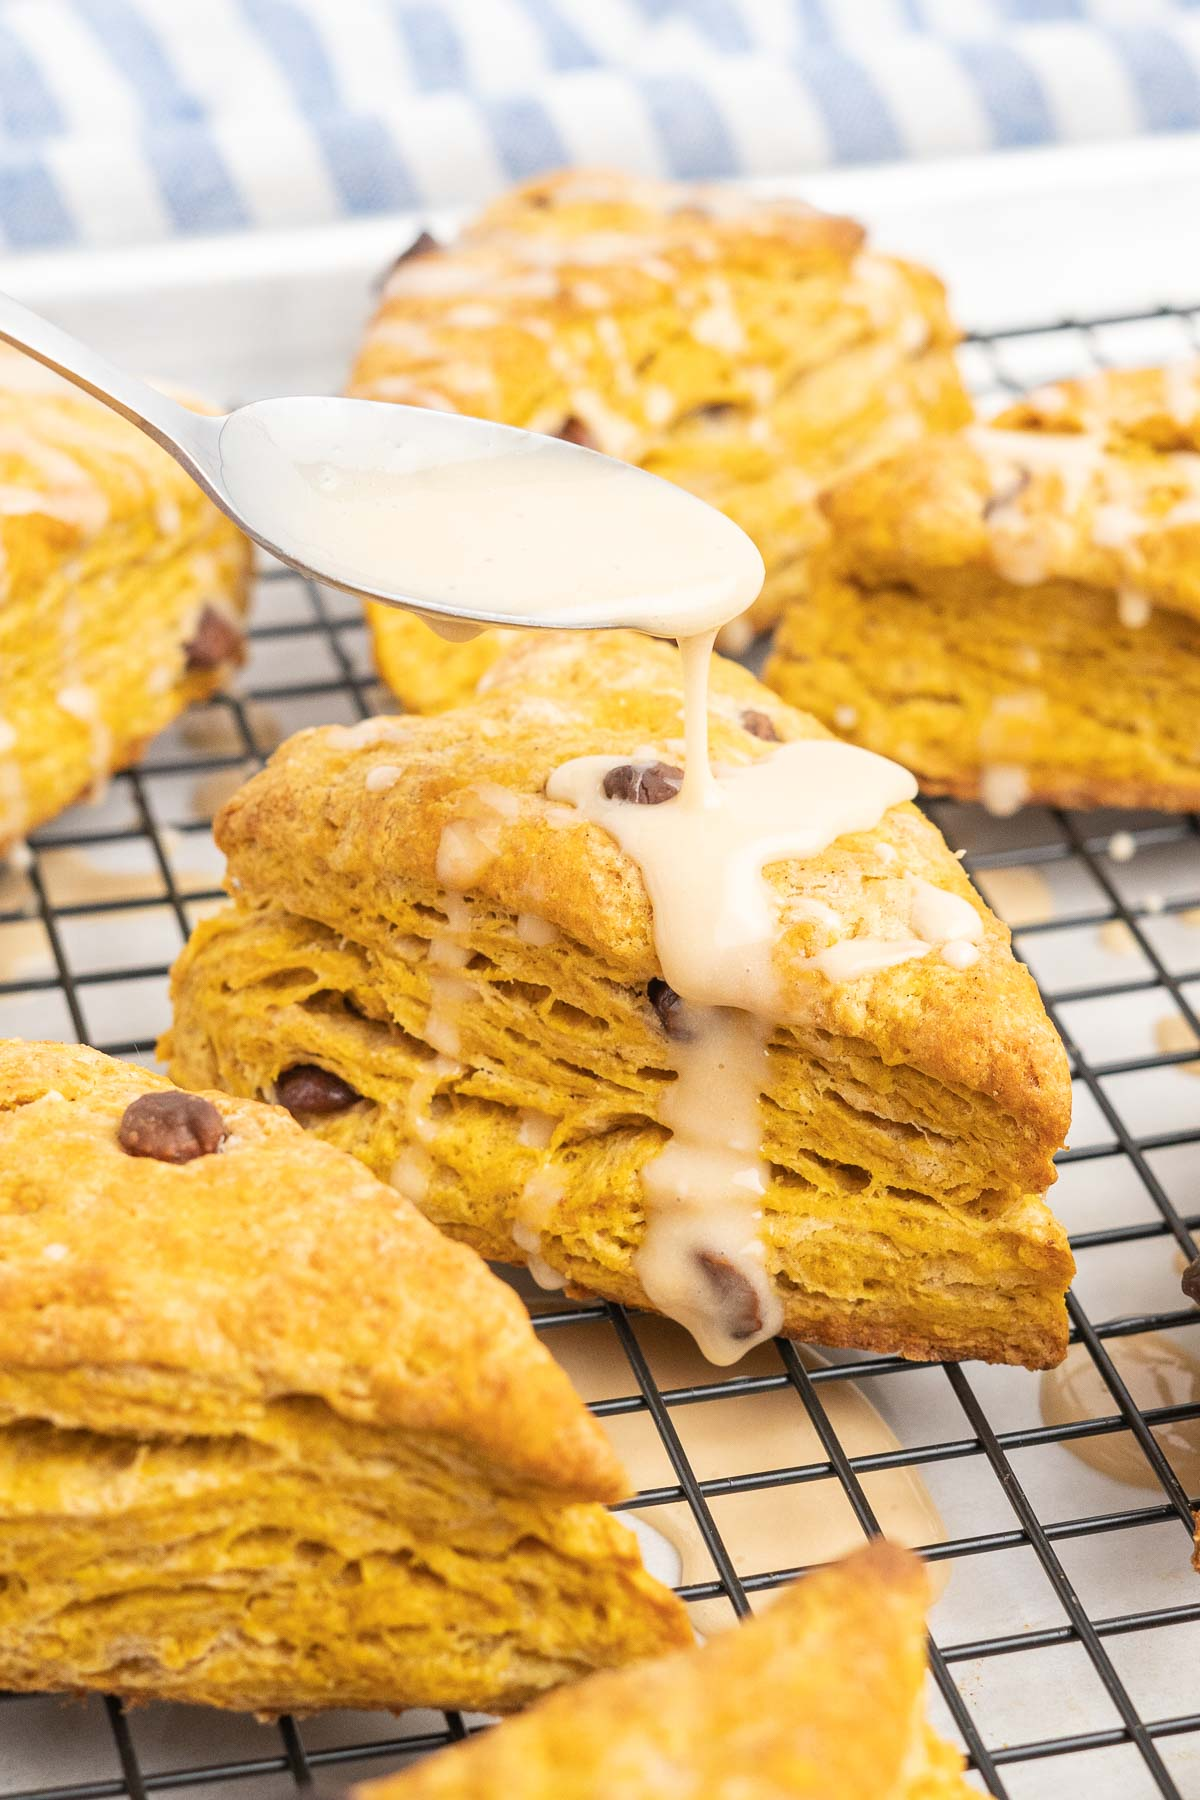 Pumpkin scone on a cooling rack being drizzled with icing.